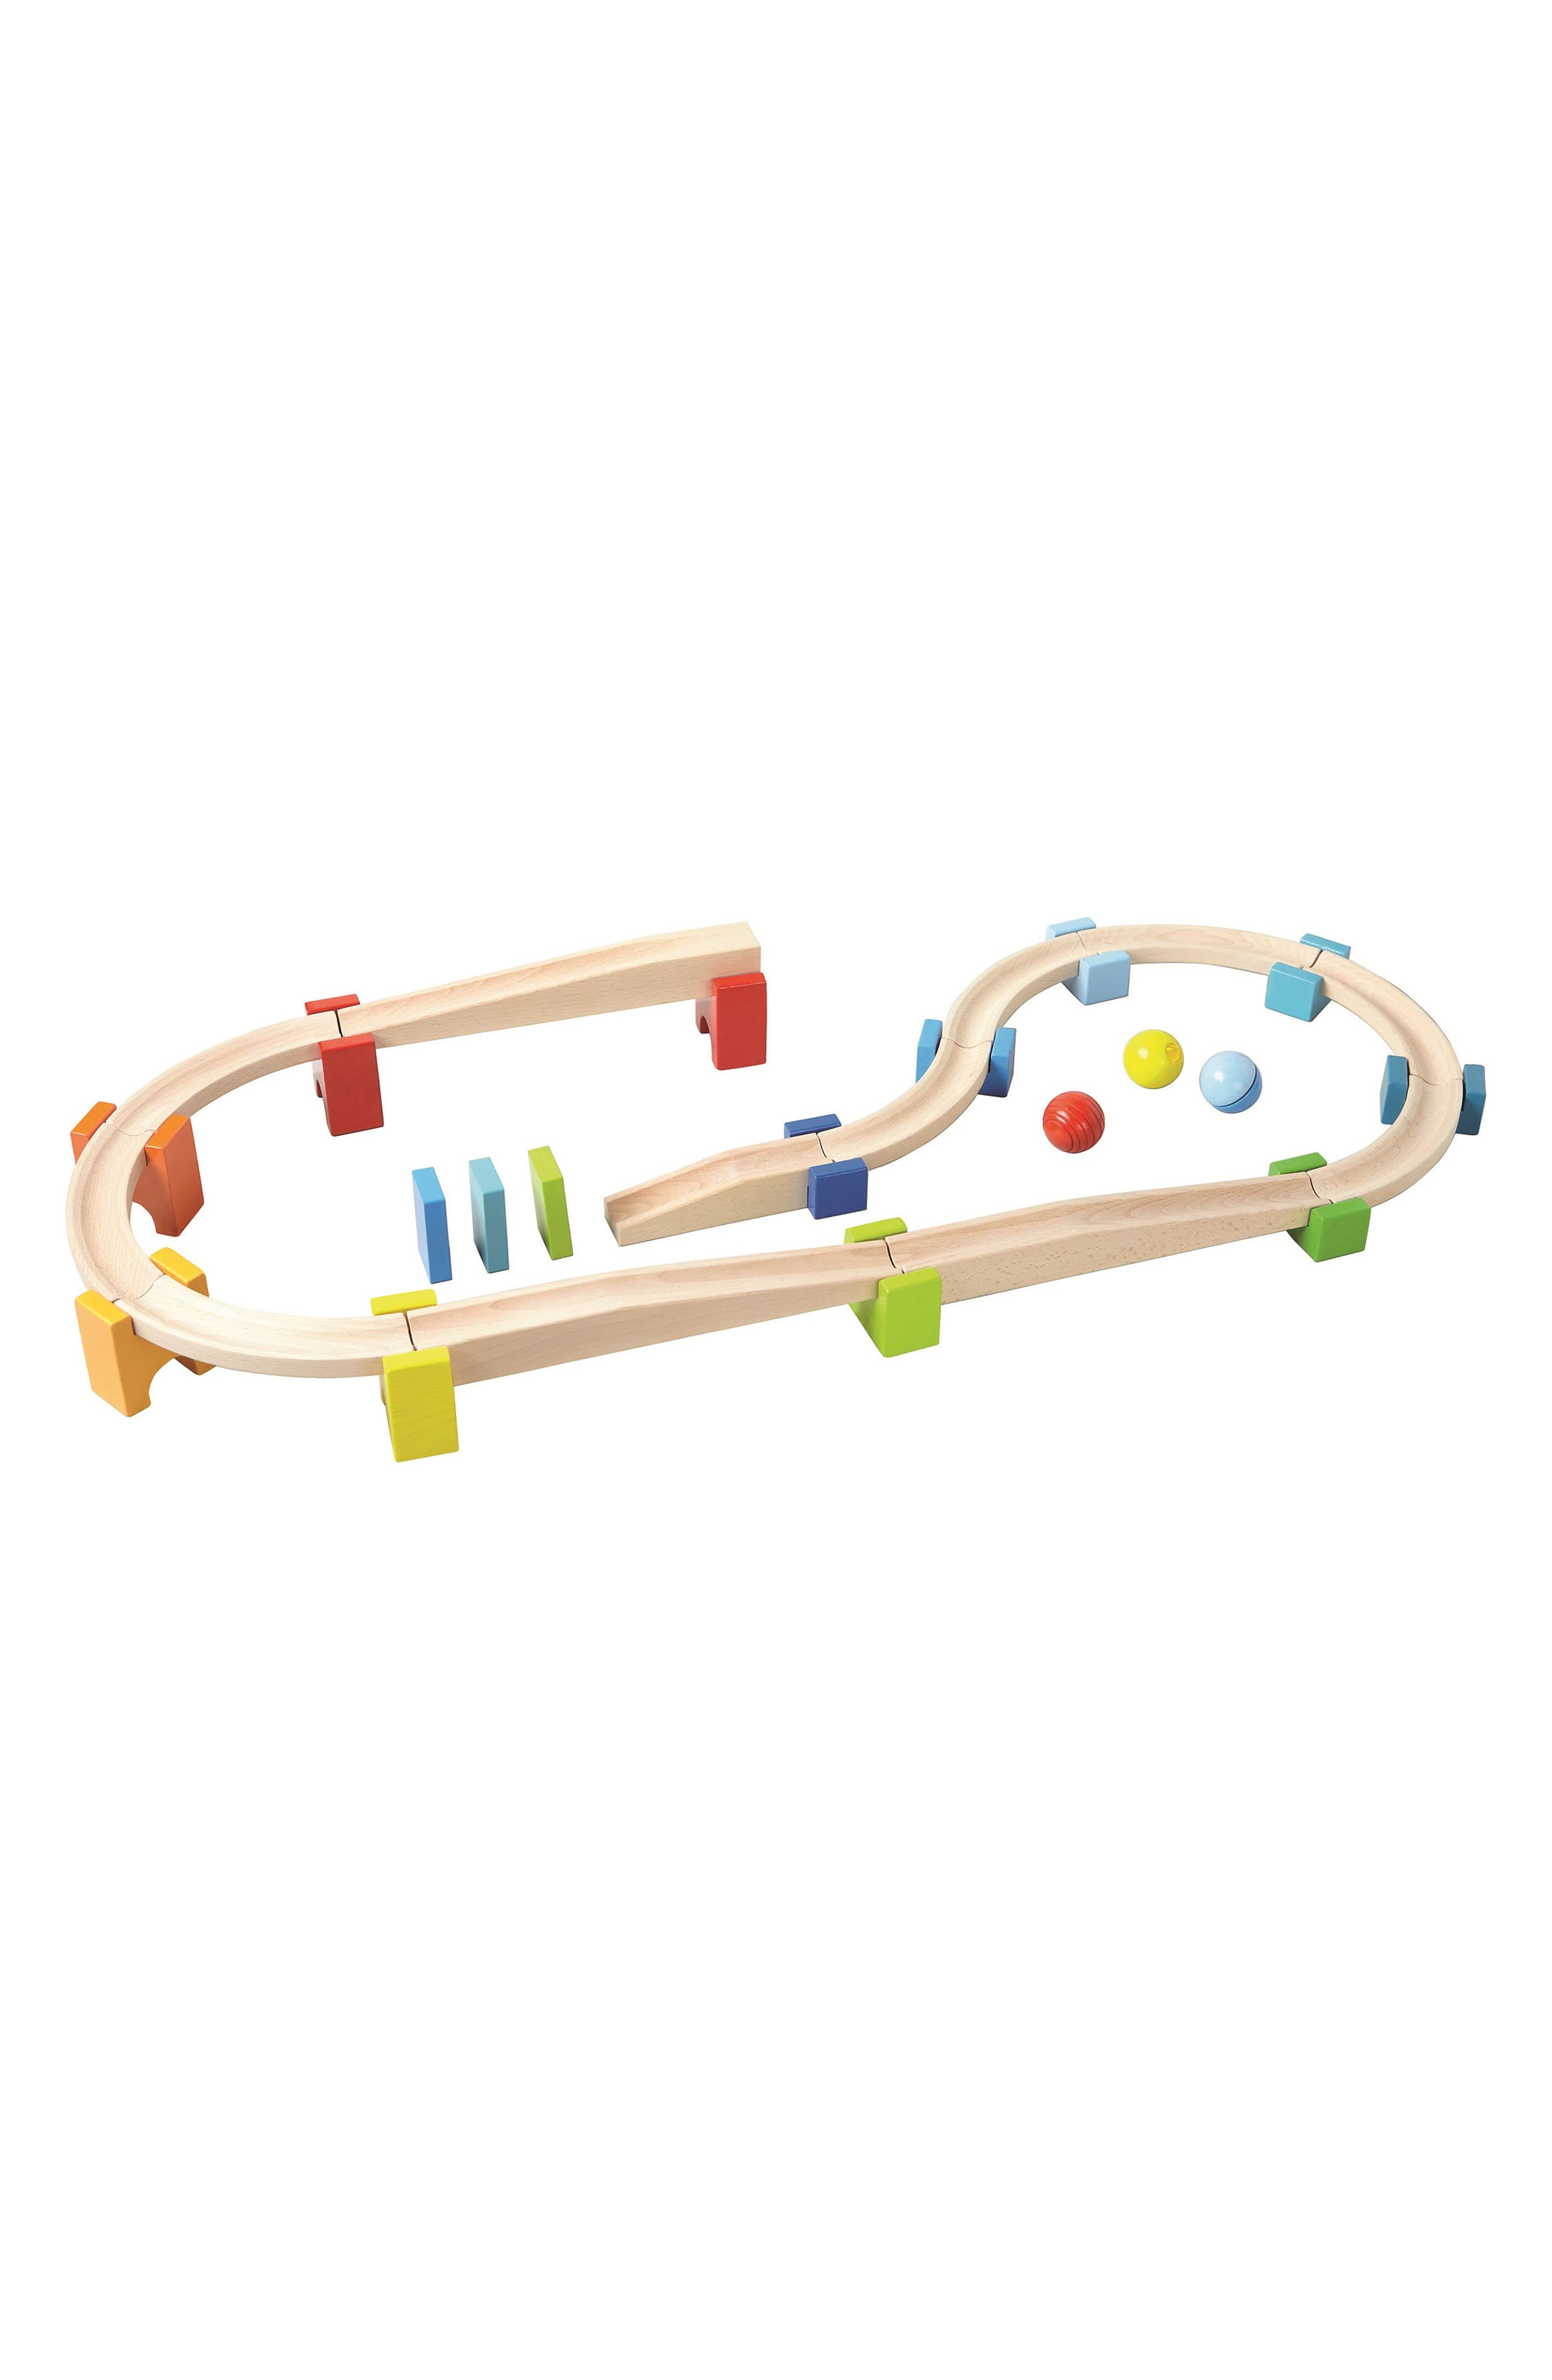 My First Ball Track - 30-Piece Large Basic Pack Construction Set,                         Main,                         color, Brown